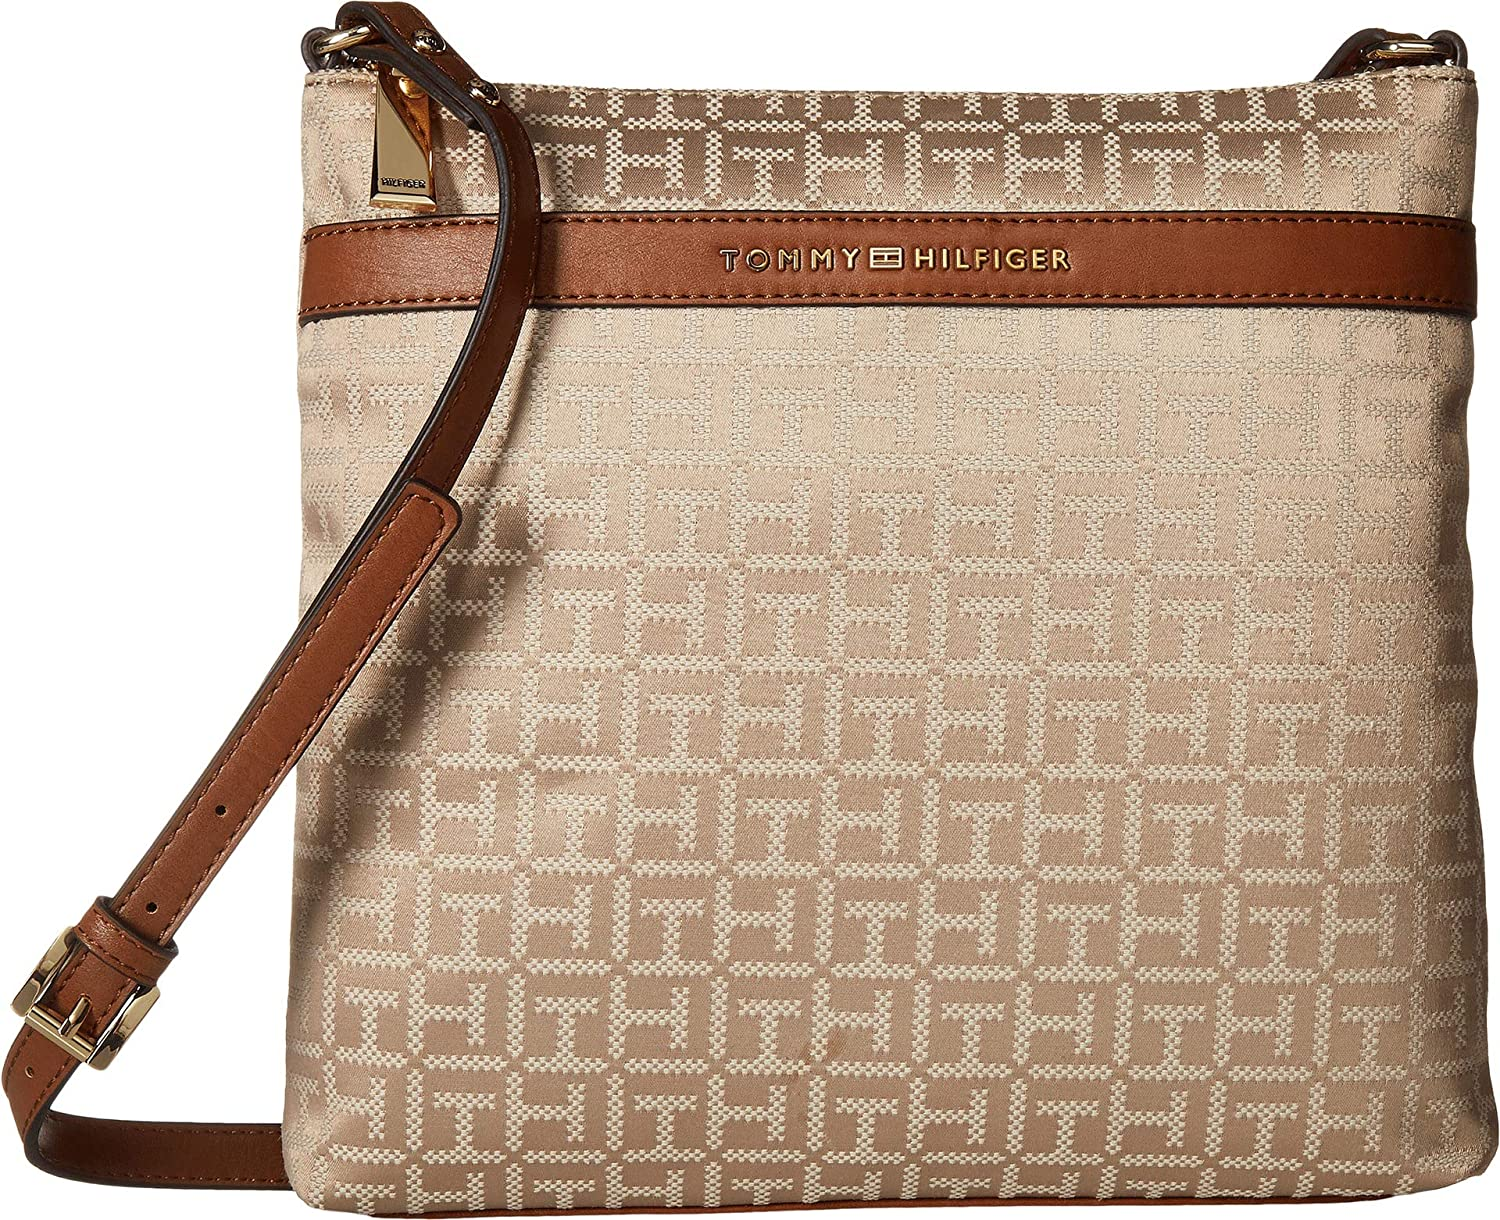 Tommy Hilfiger Womens Abington Large North South Crossbody